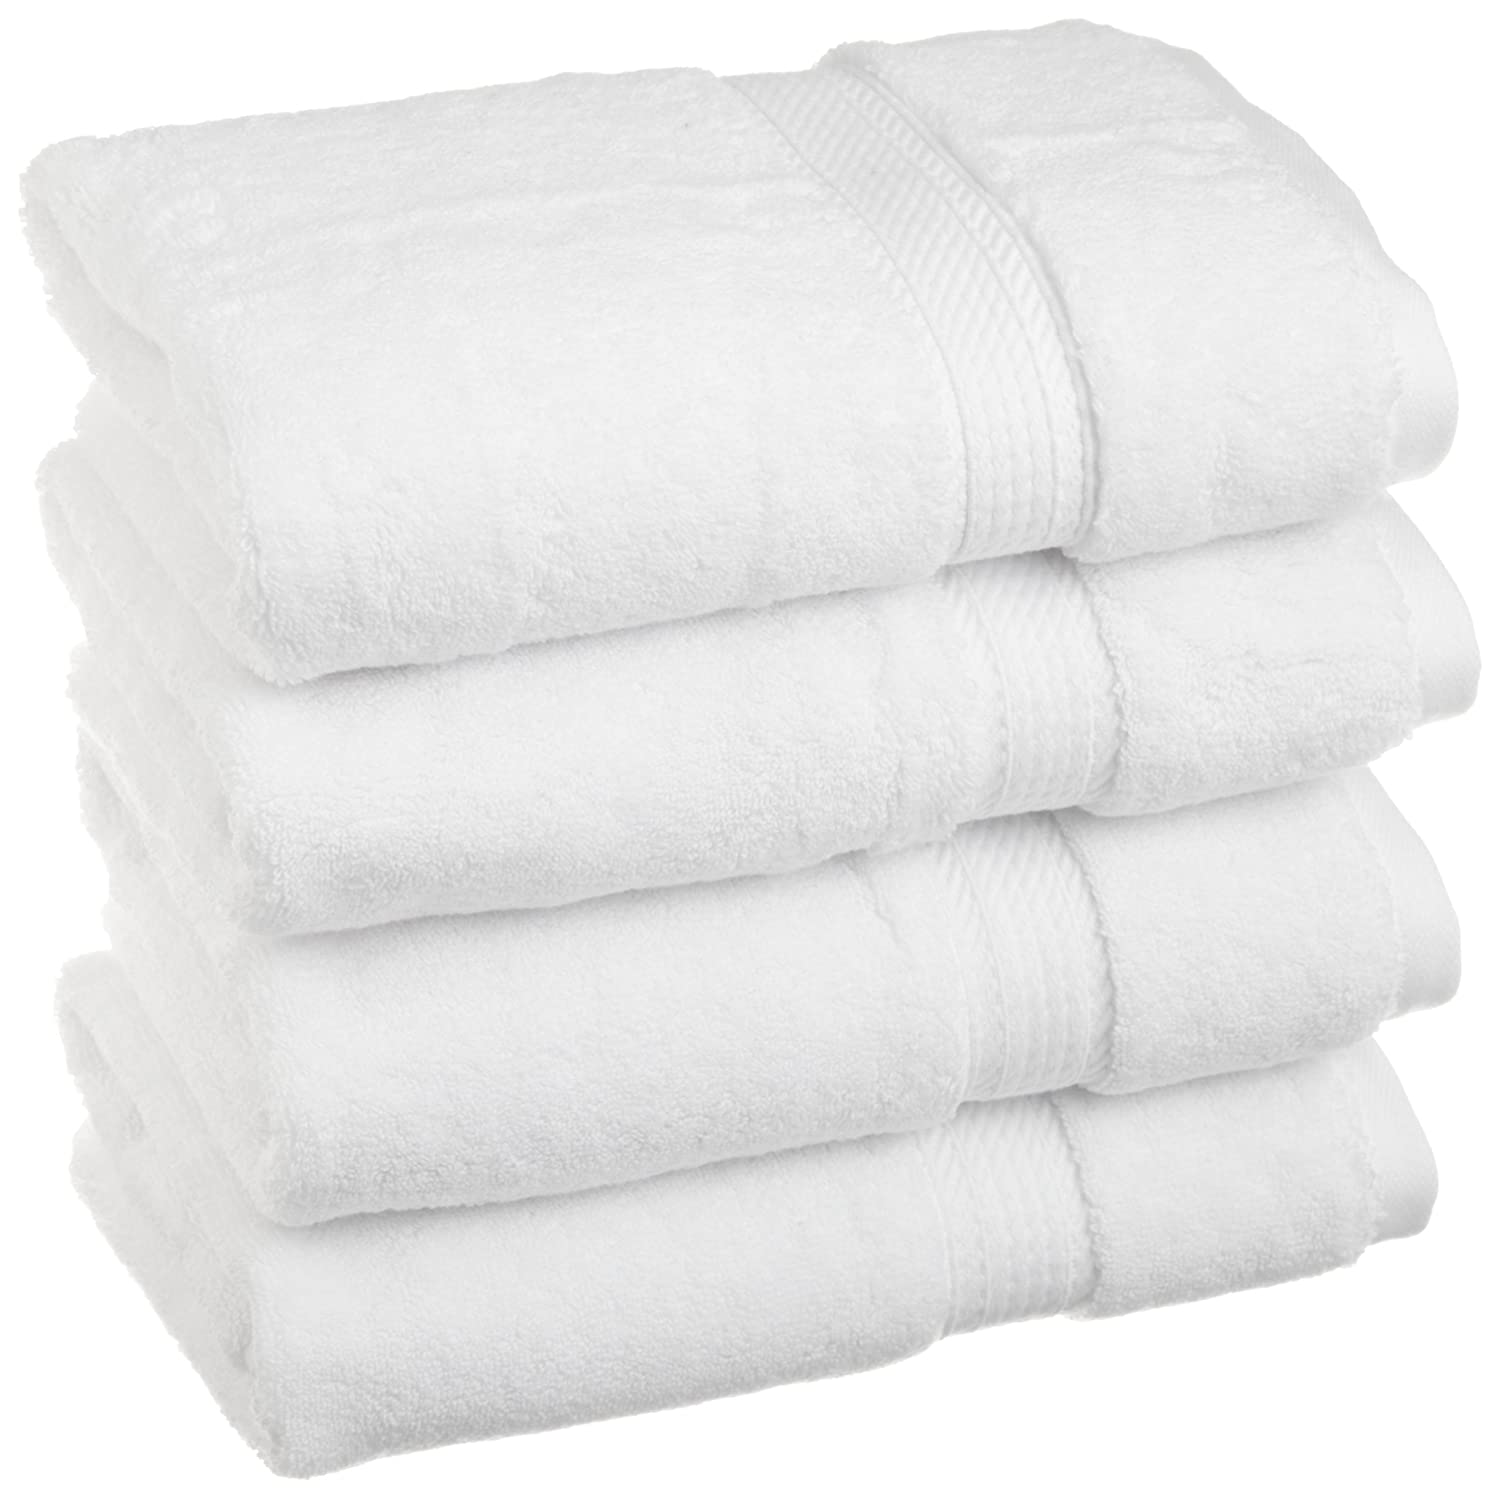 Hand Towels Bathroom: Superior 900 GSM Luxury Bathroom Hand Towels, Made Of 100